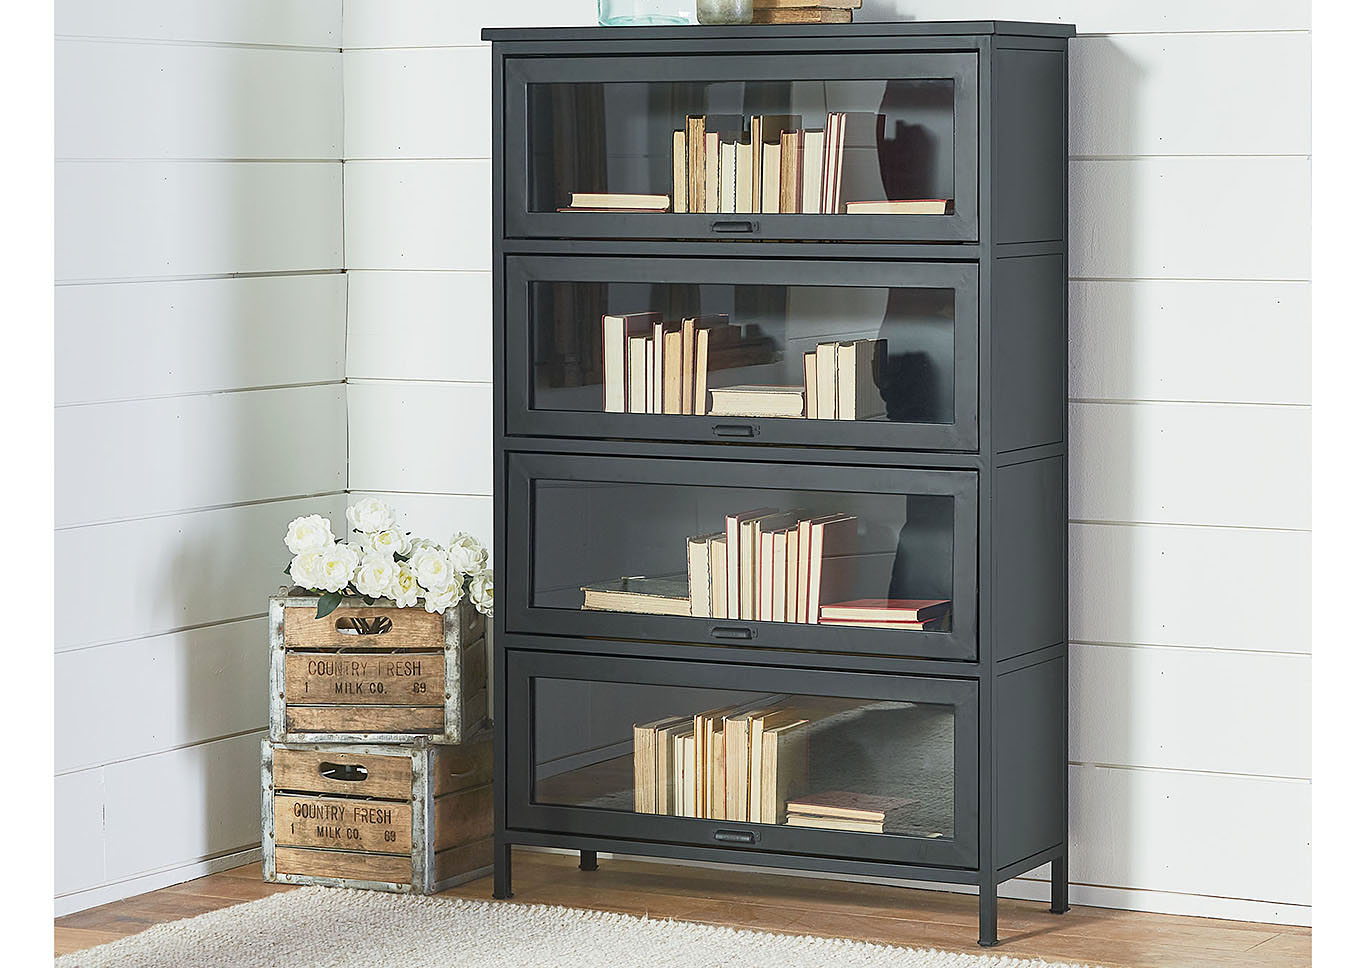 Furniture Express Hawaii Barrister Carbon Bookcase